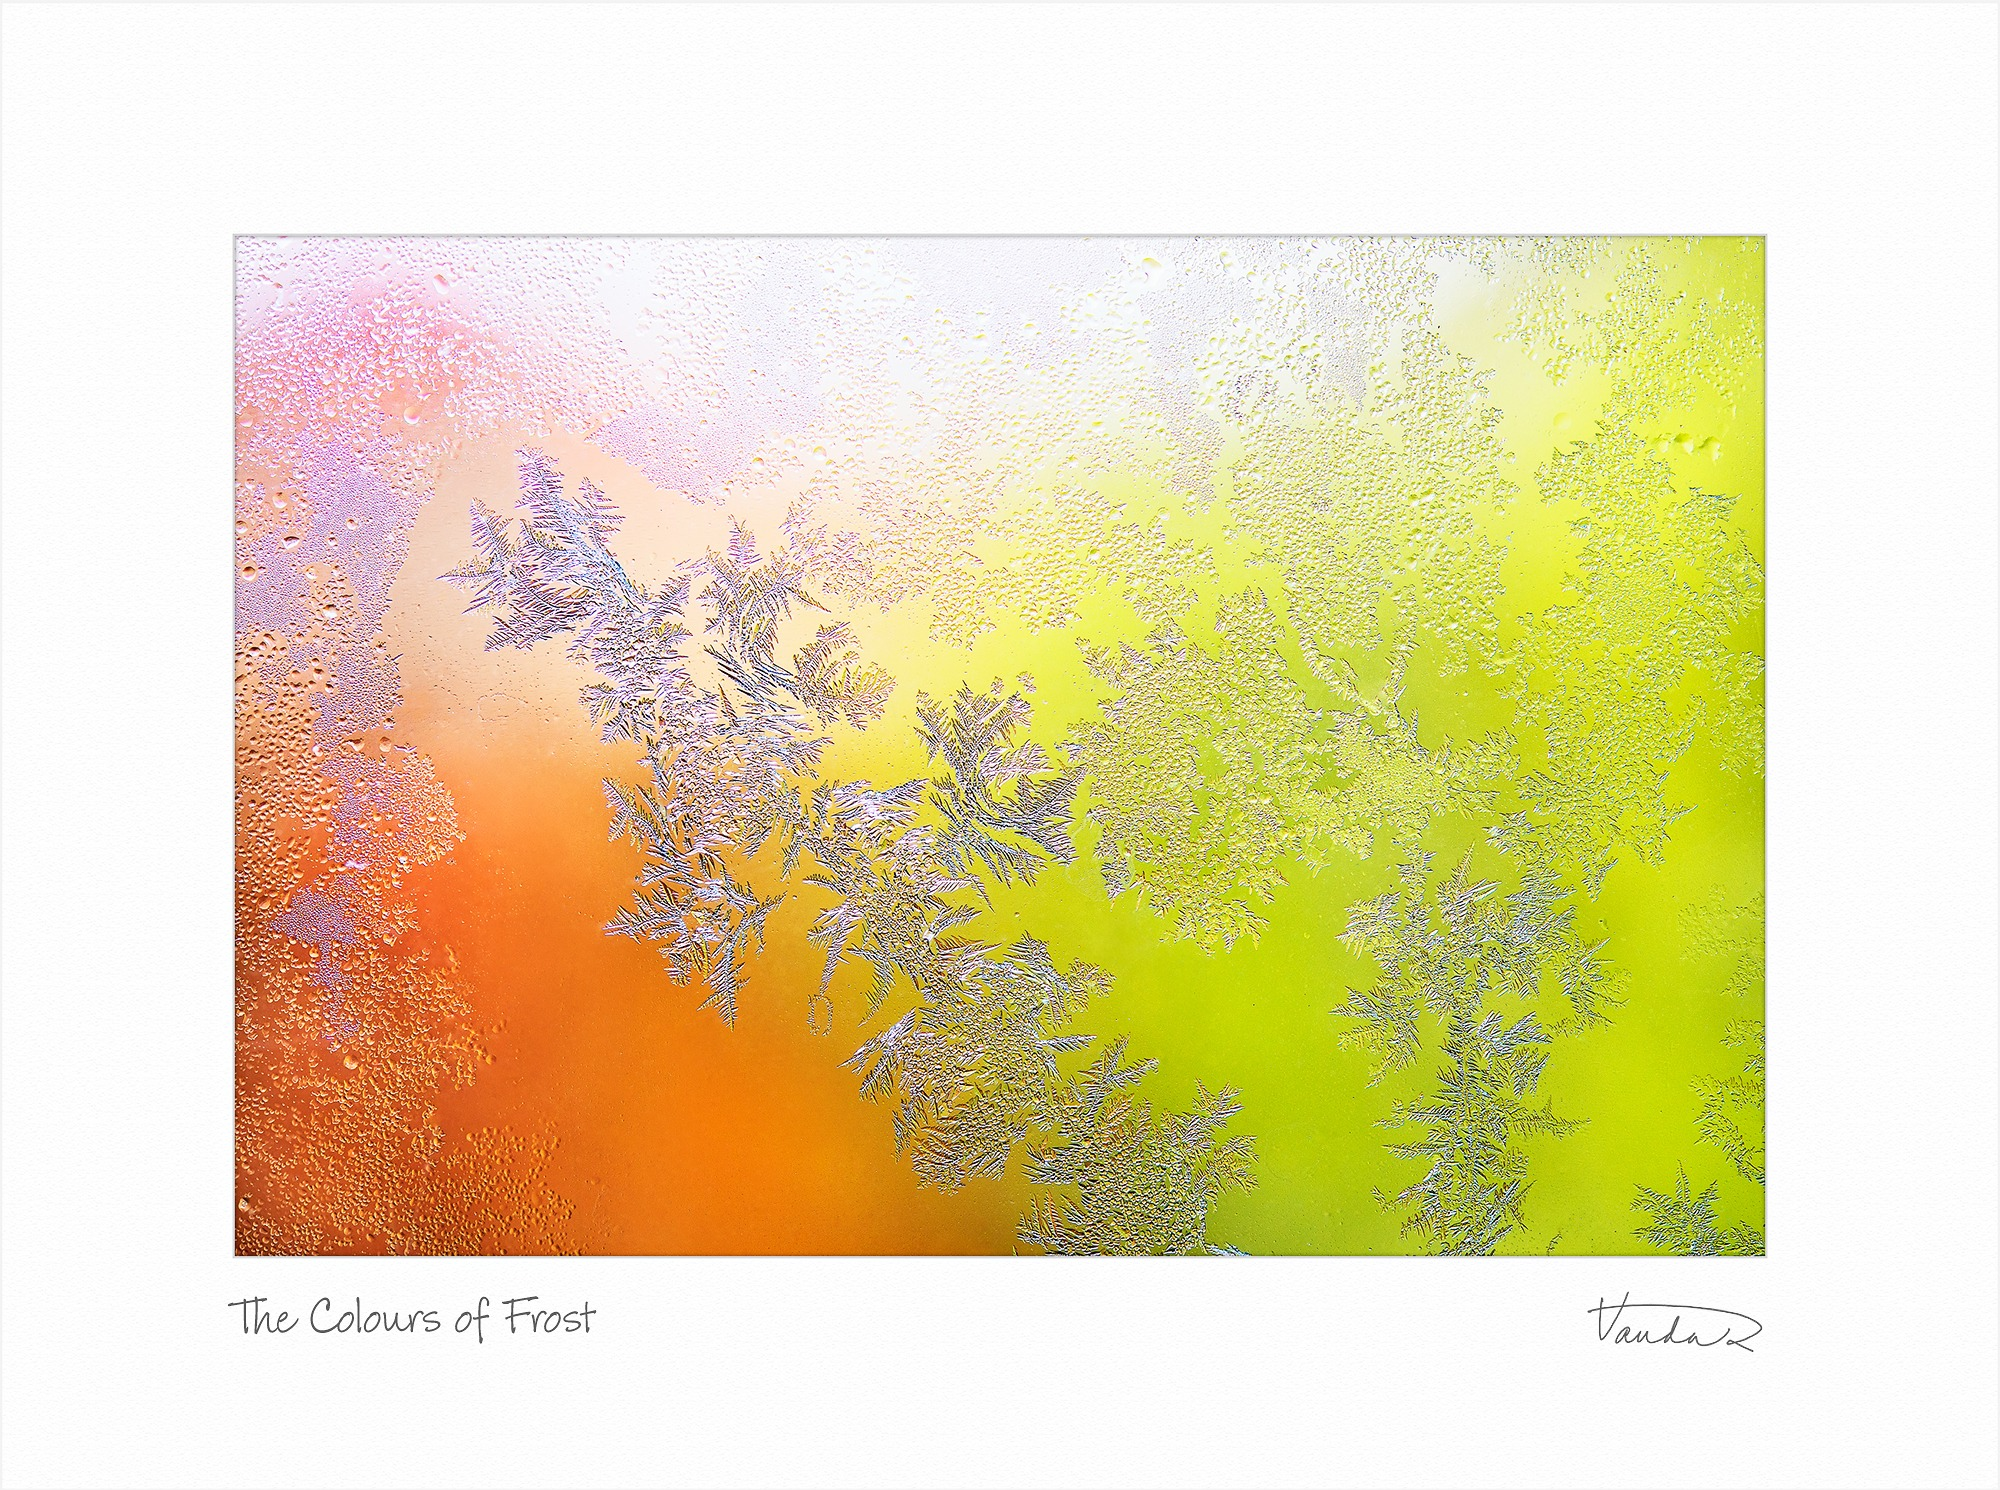 The Colours of Frost